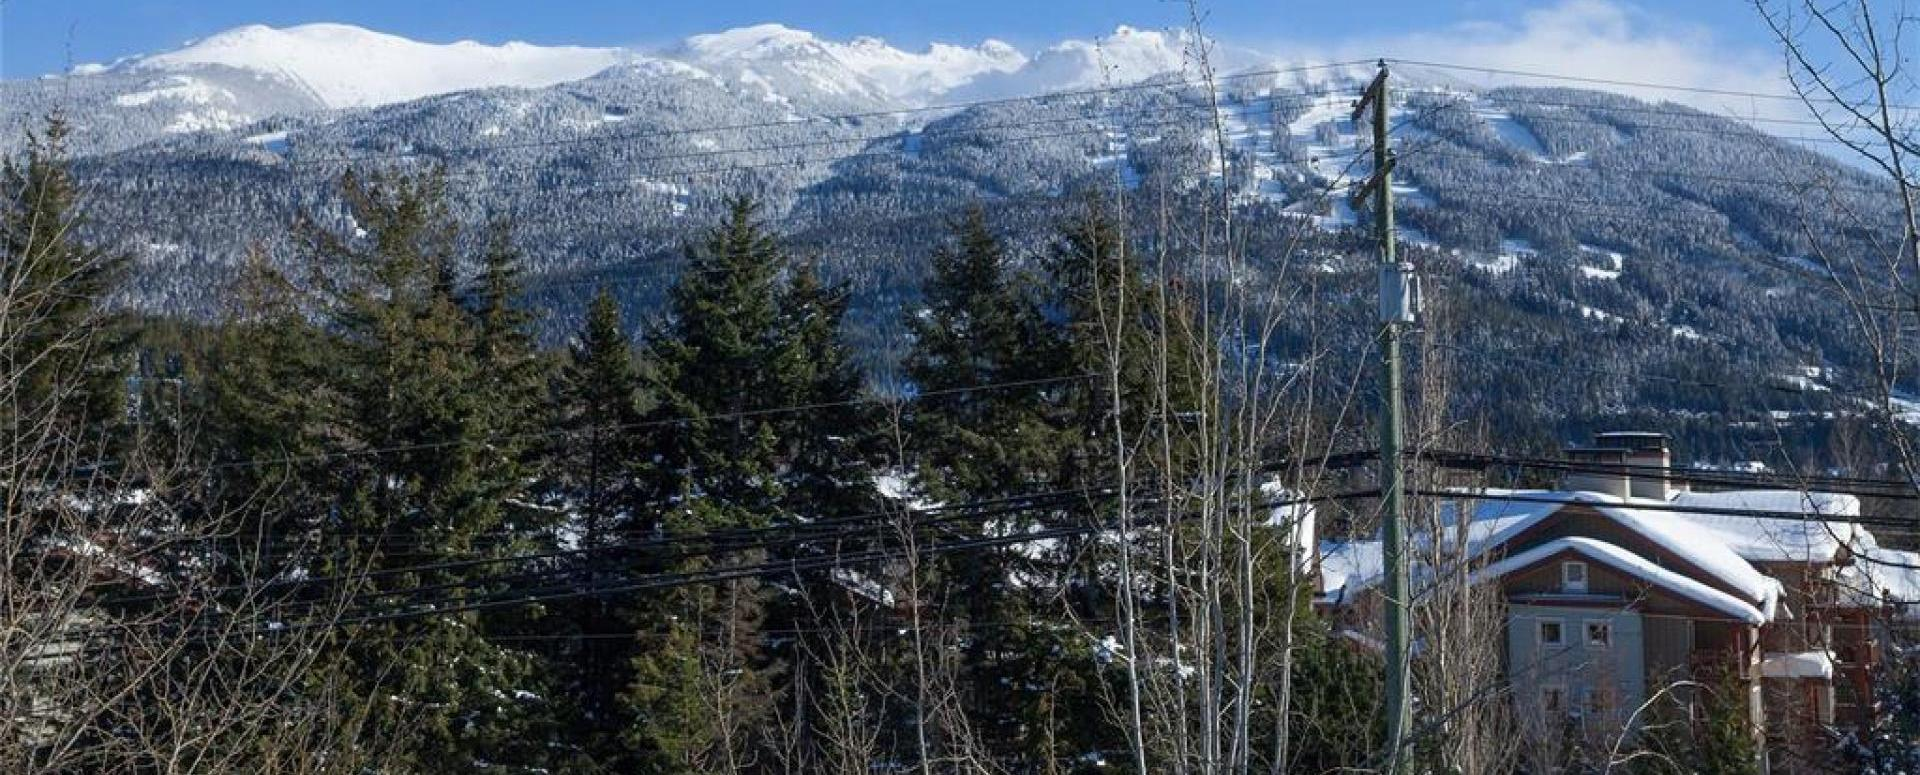 Buy Or Sell Your Home In Nesters, Whistler